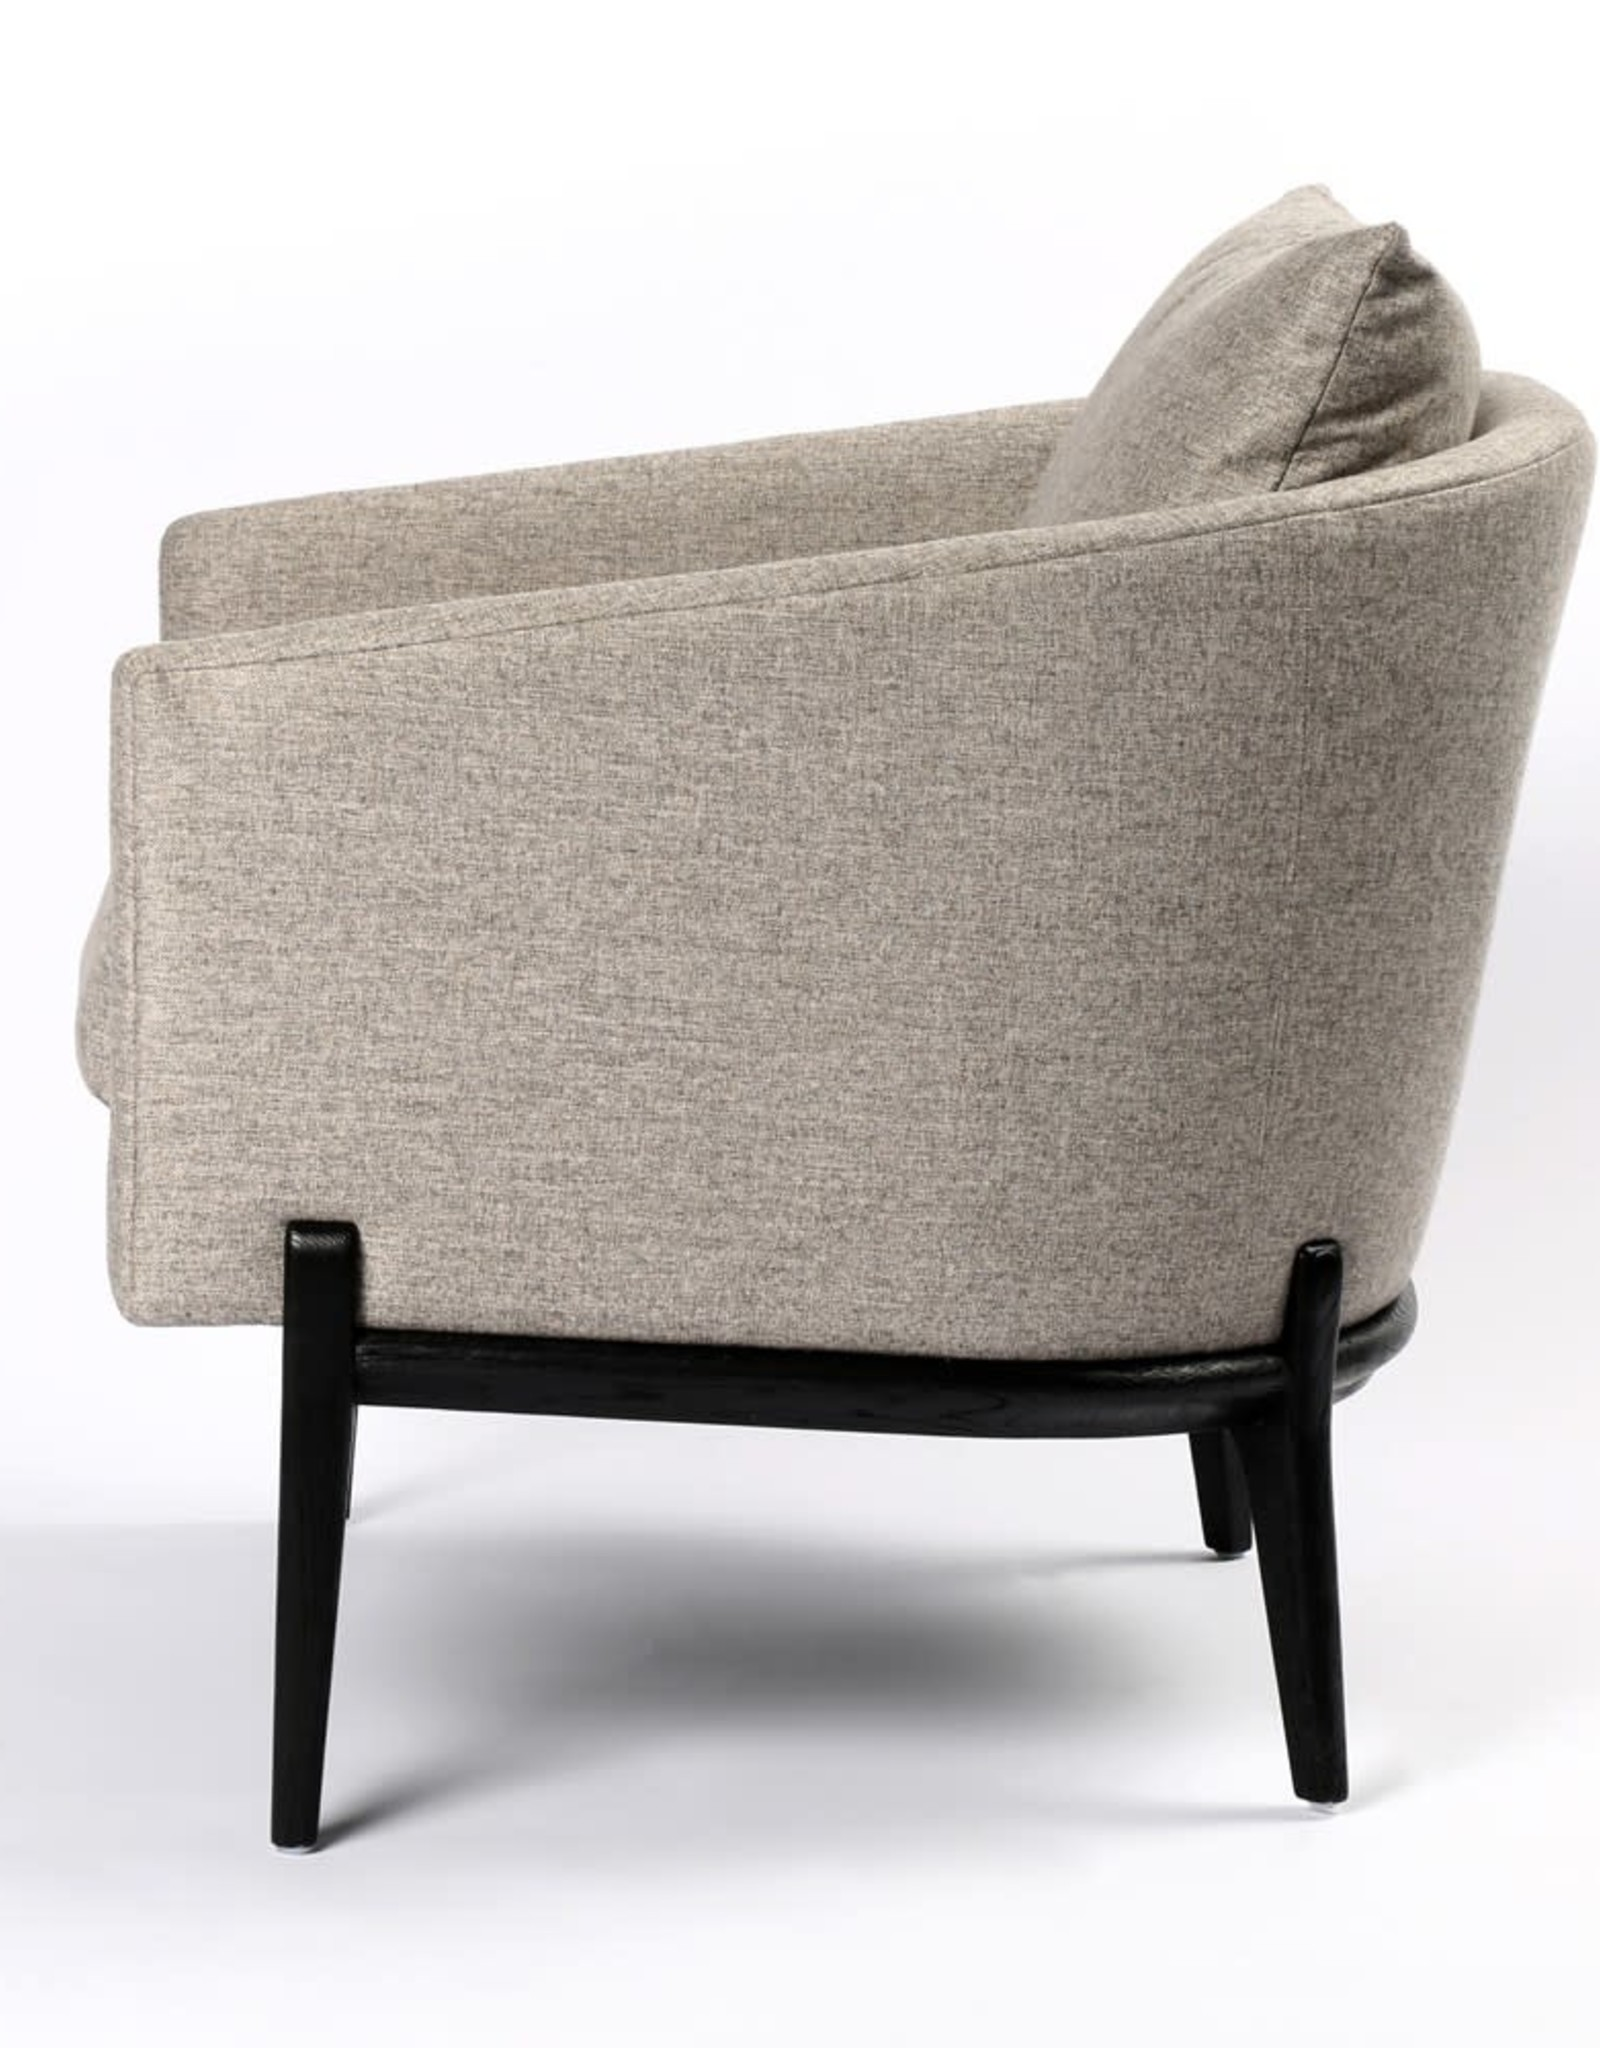 CHAIR COPELAND   ORLY NATURAL